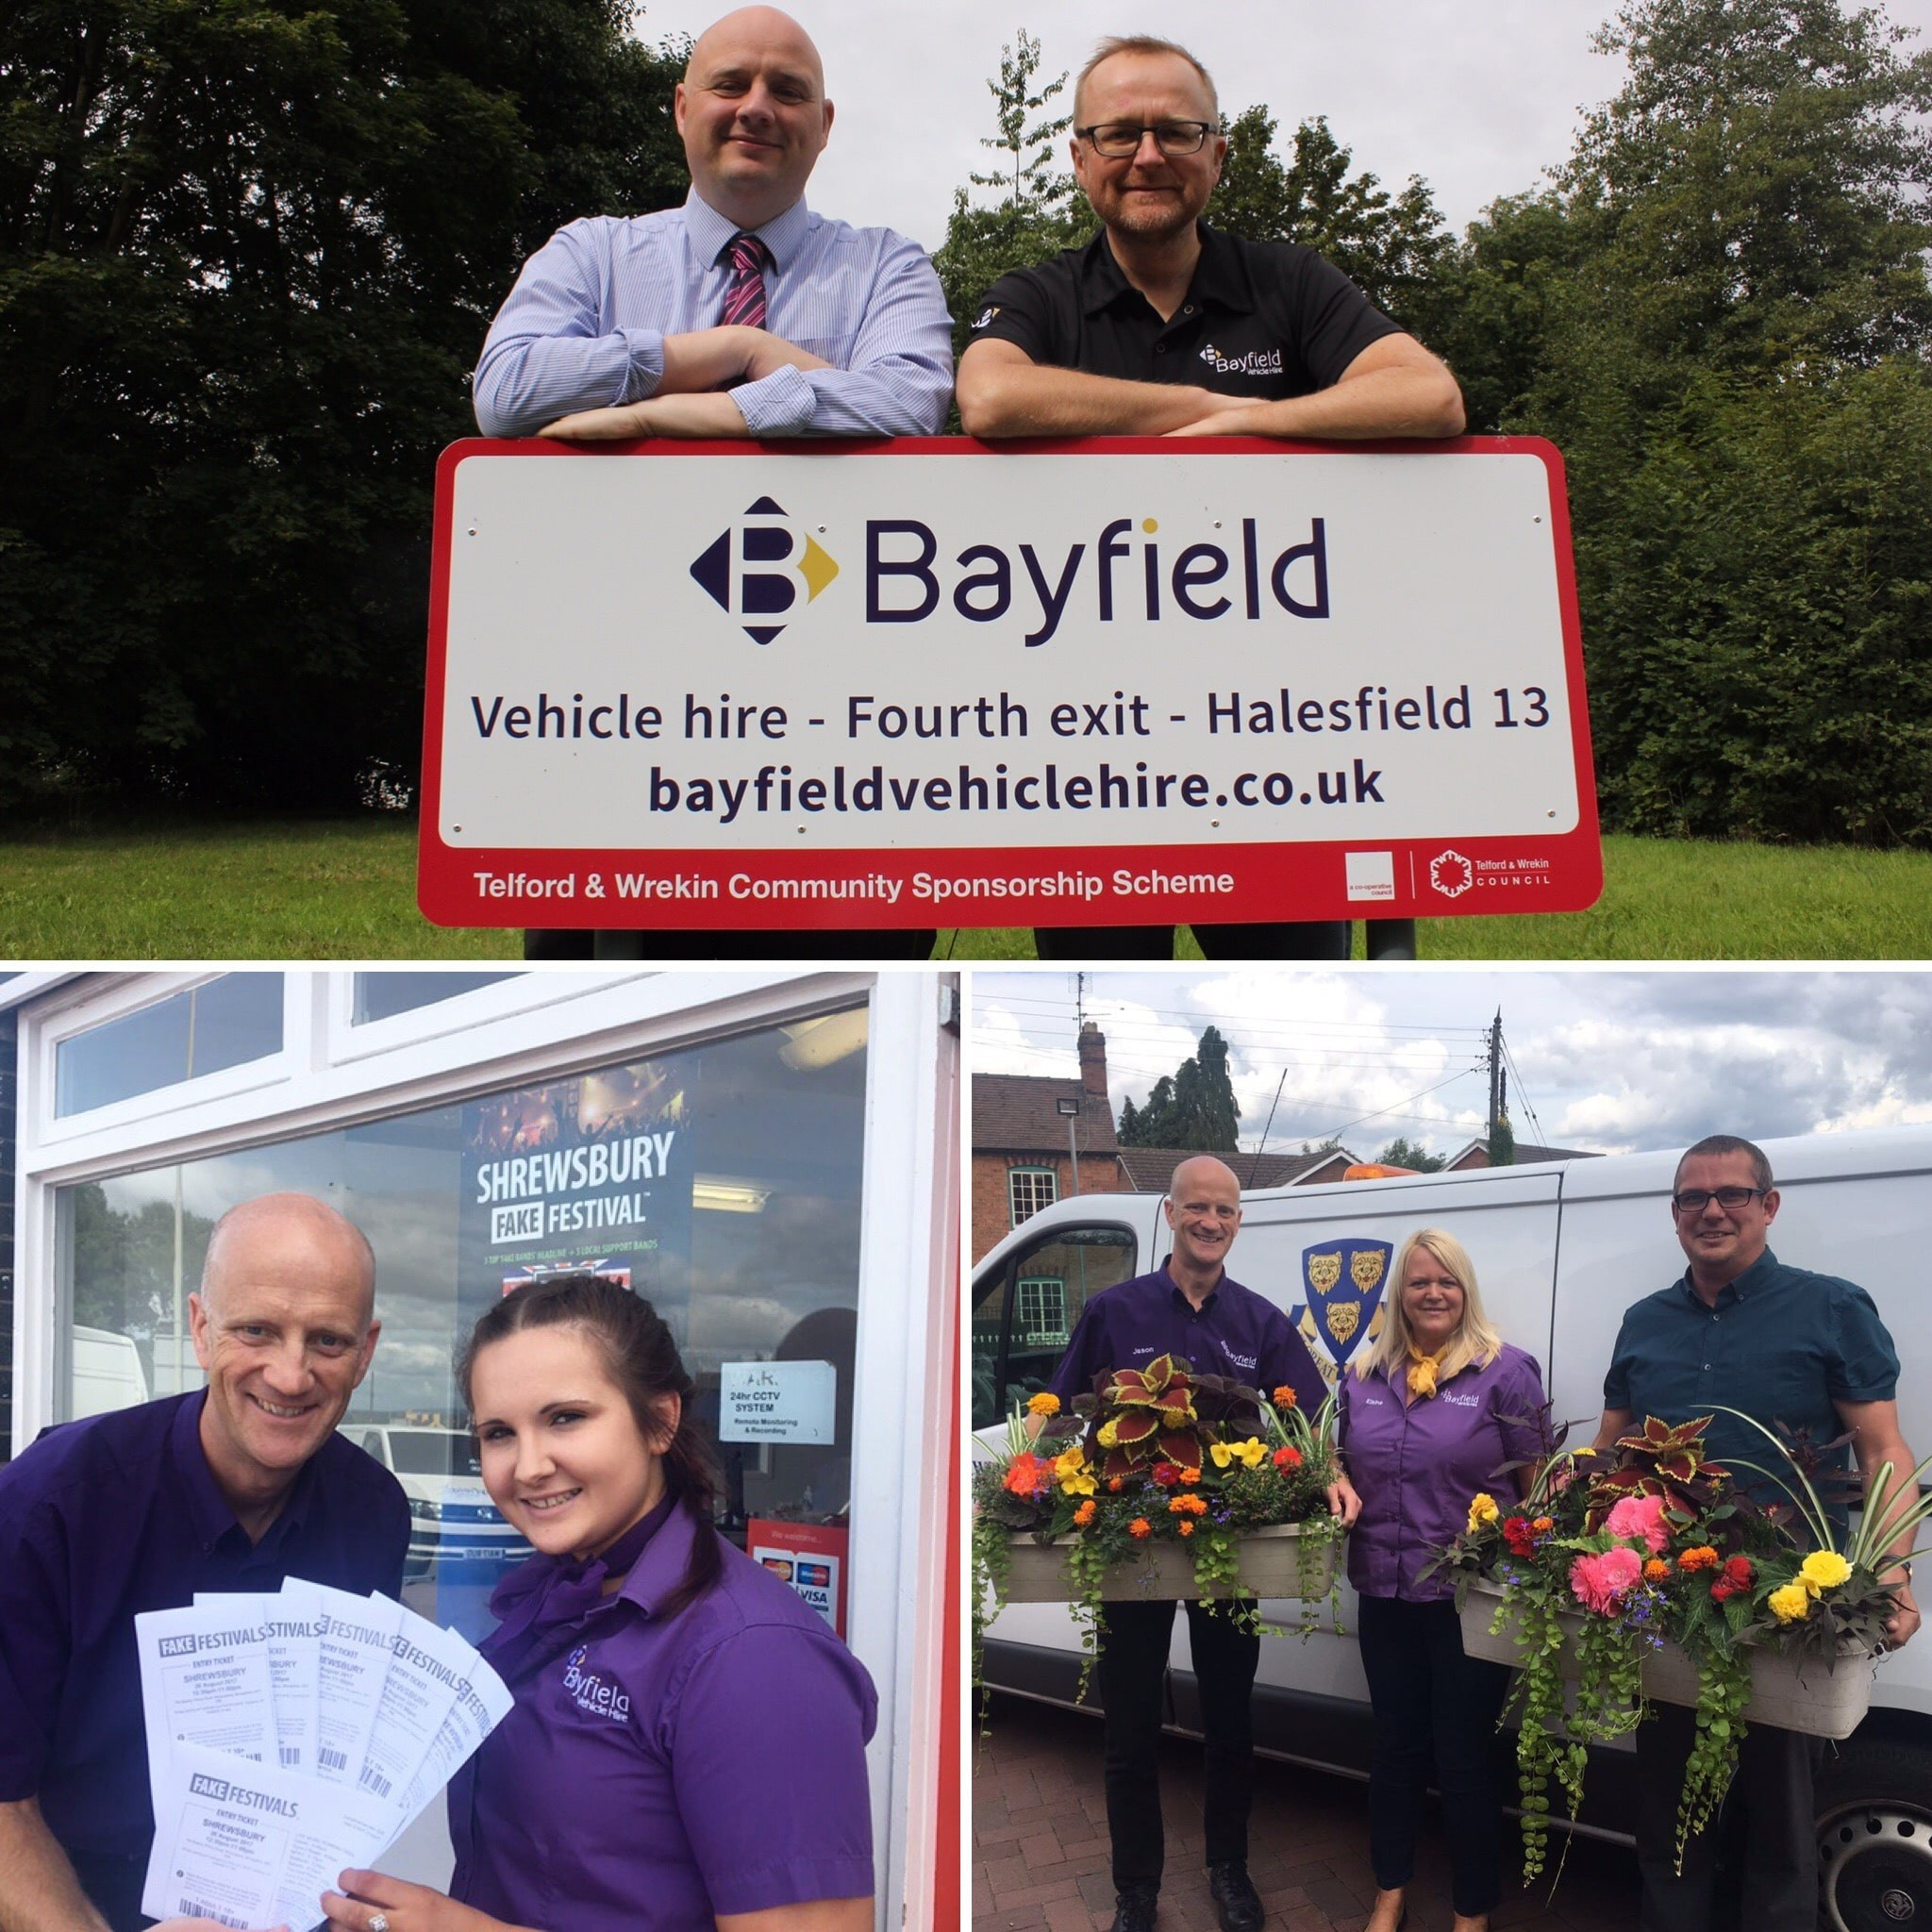 Bayfield Vehicle Hire in the Shropshire community